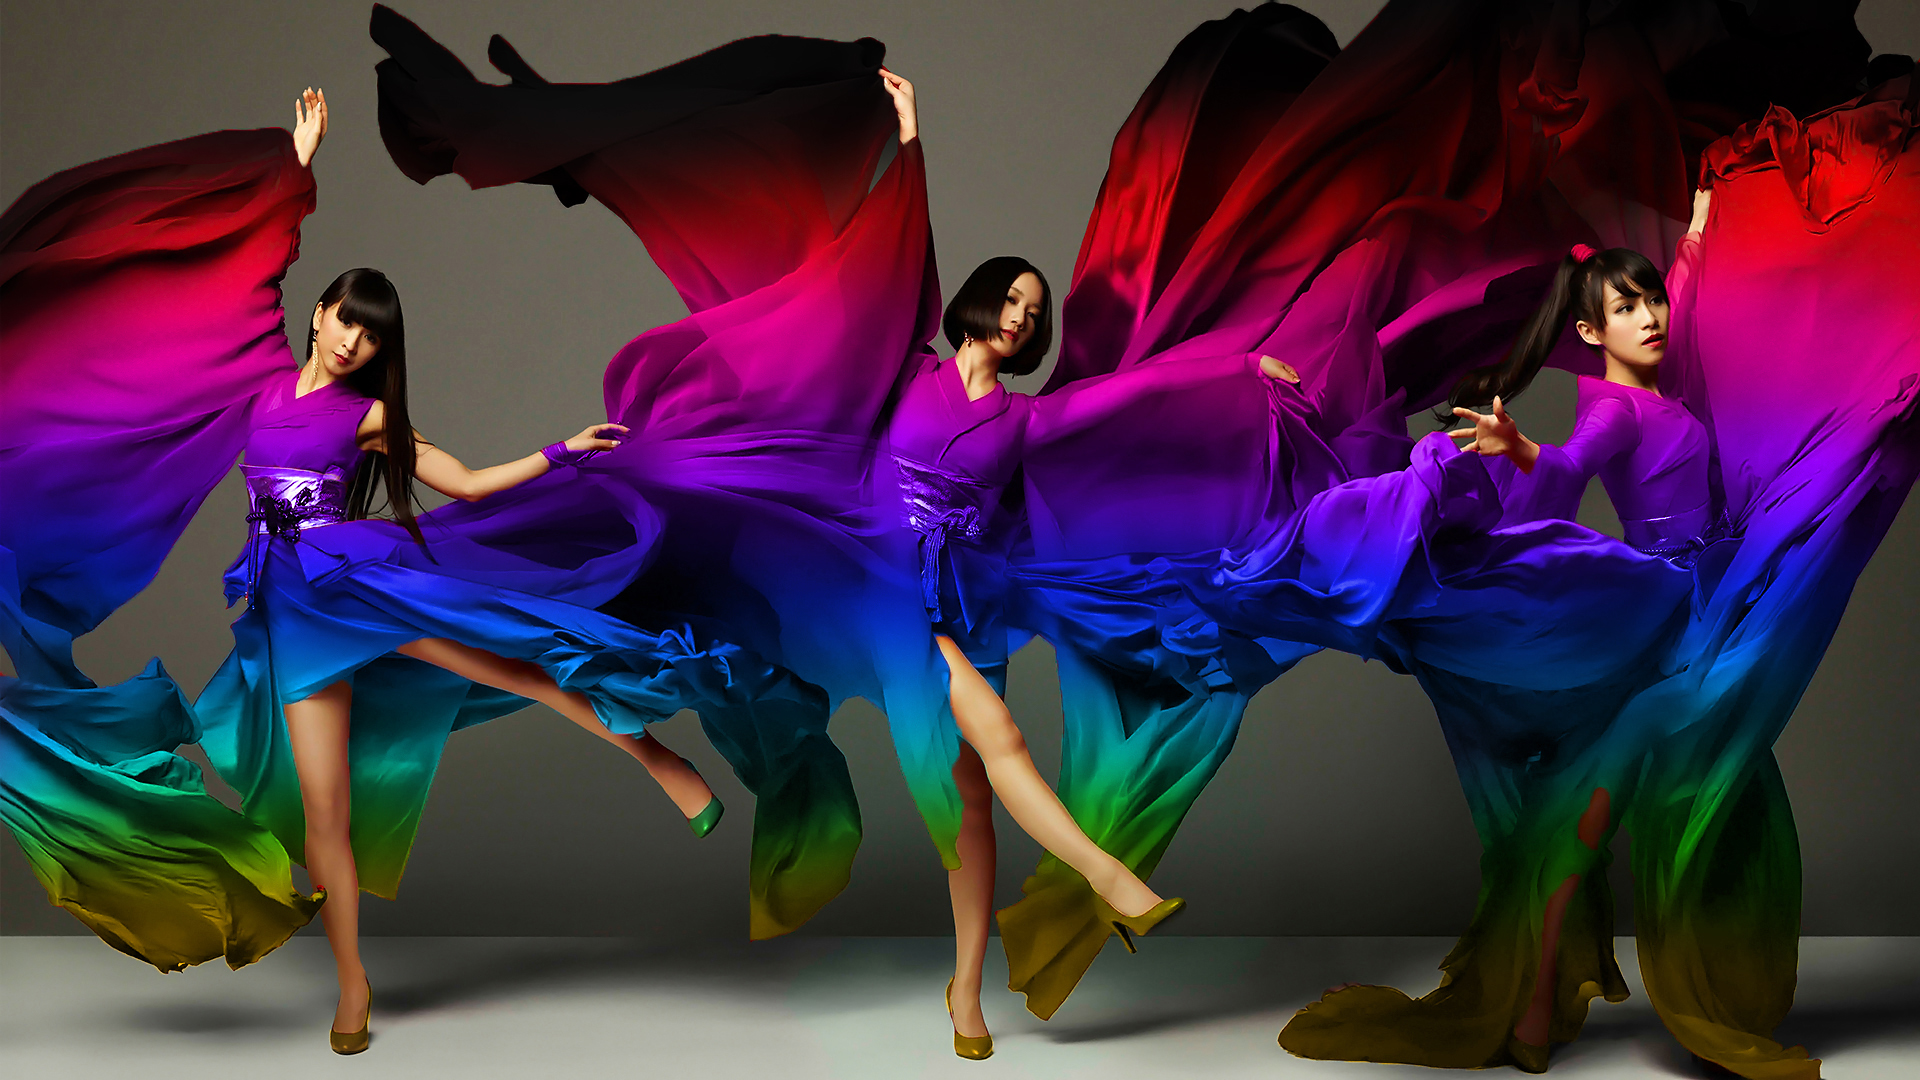 Perfume City Forums • View topic - Perfume wallpapers